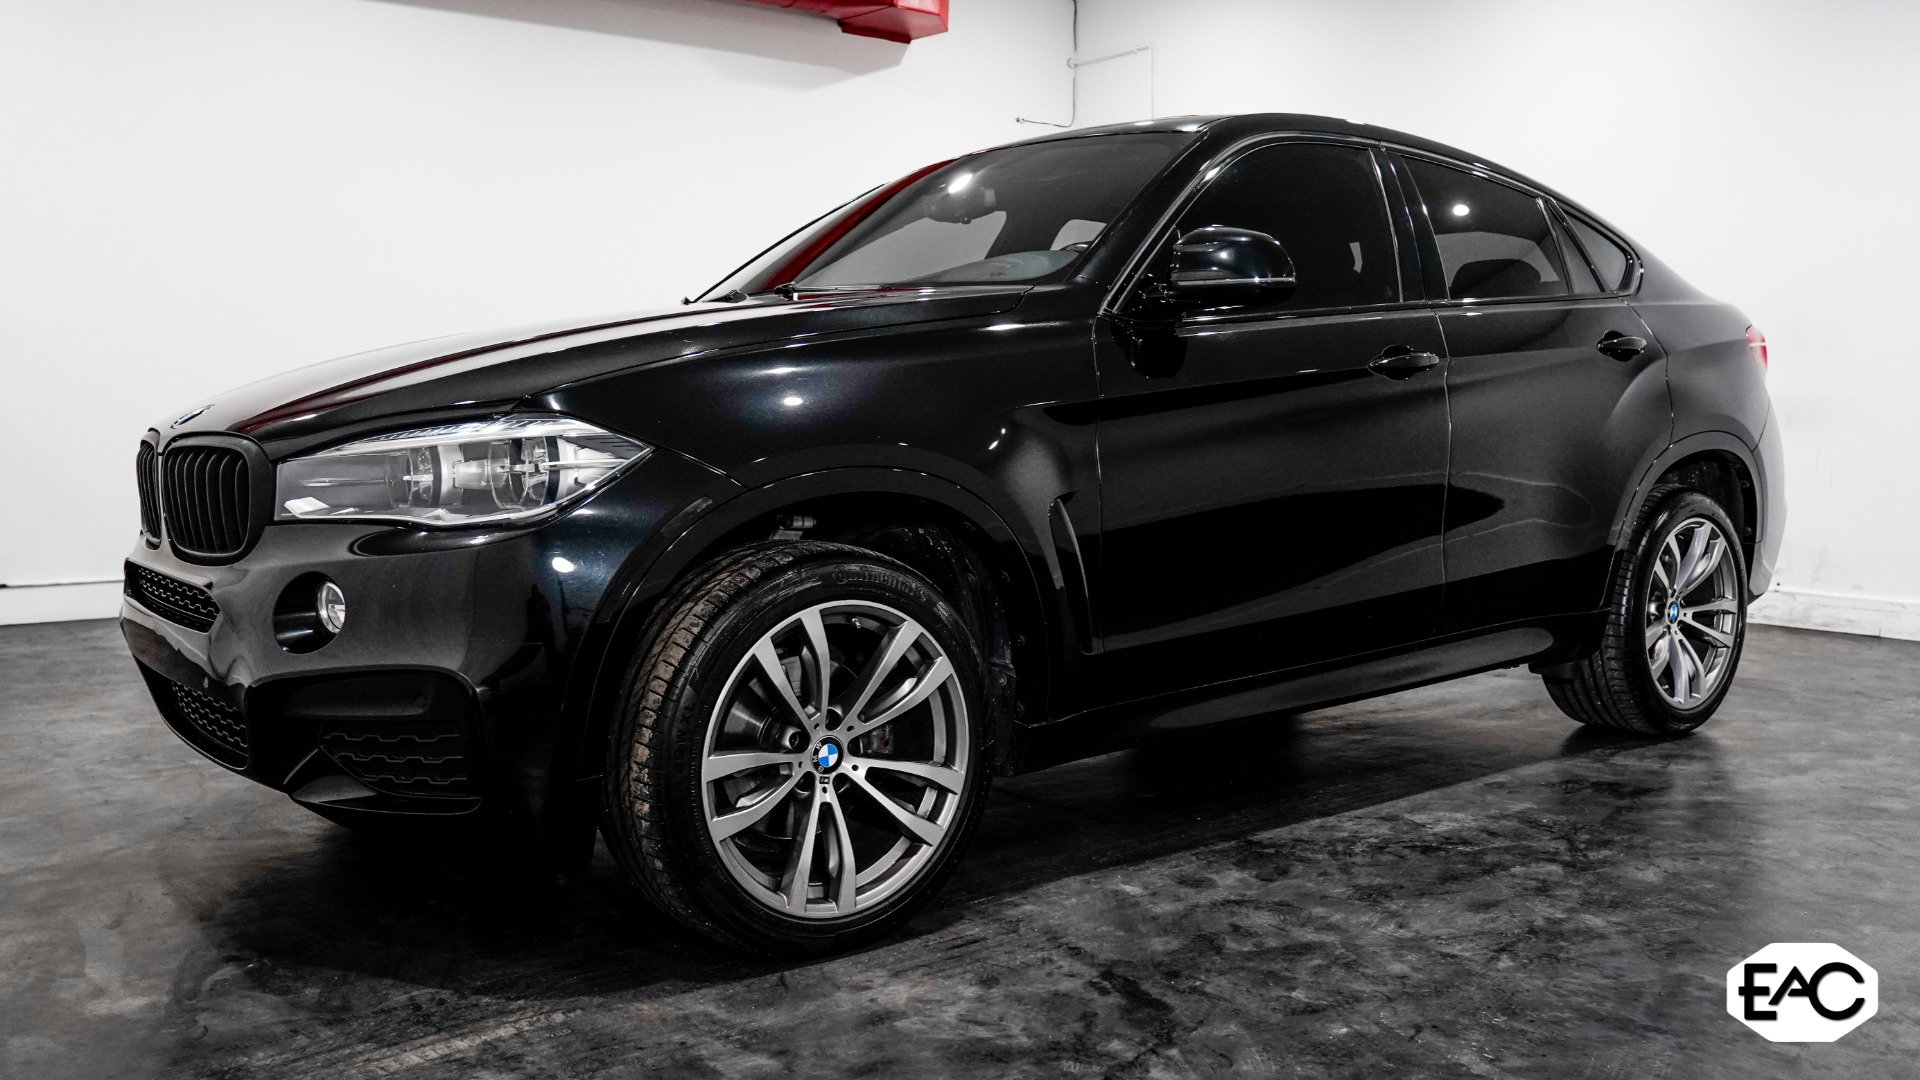 Used 2016 BMW X6 xDrive35i for sale Sold at Empire Auto Collection in Warren MI 48091 1